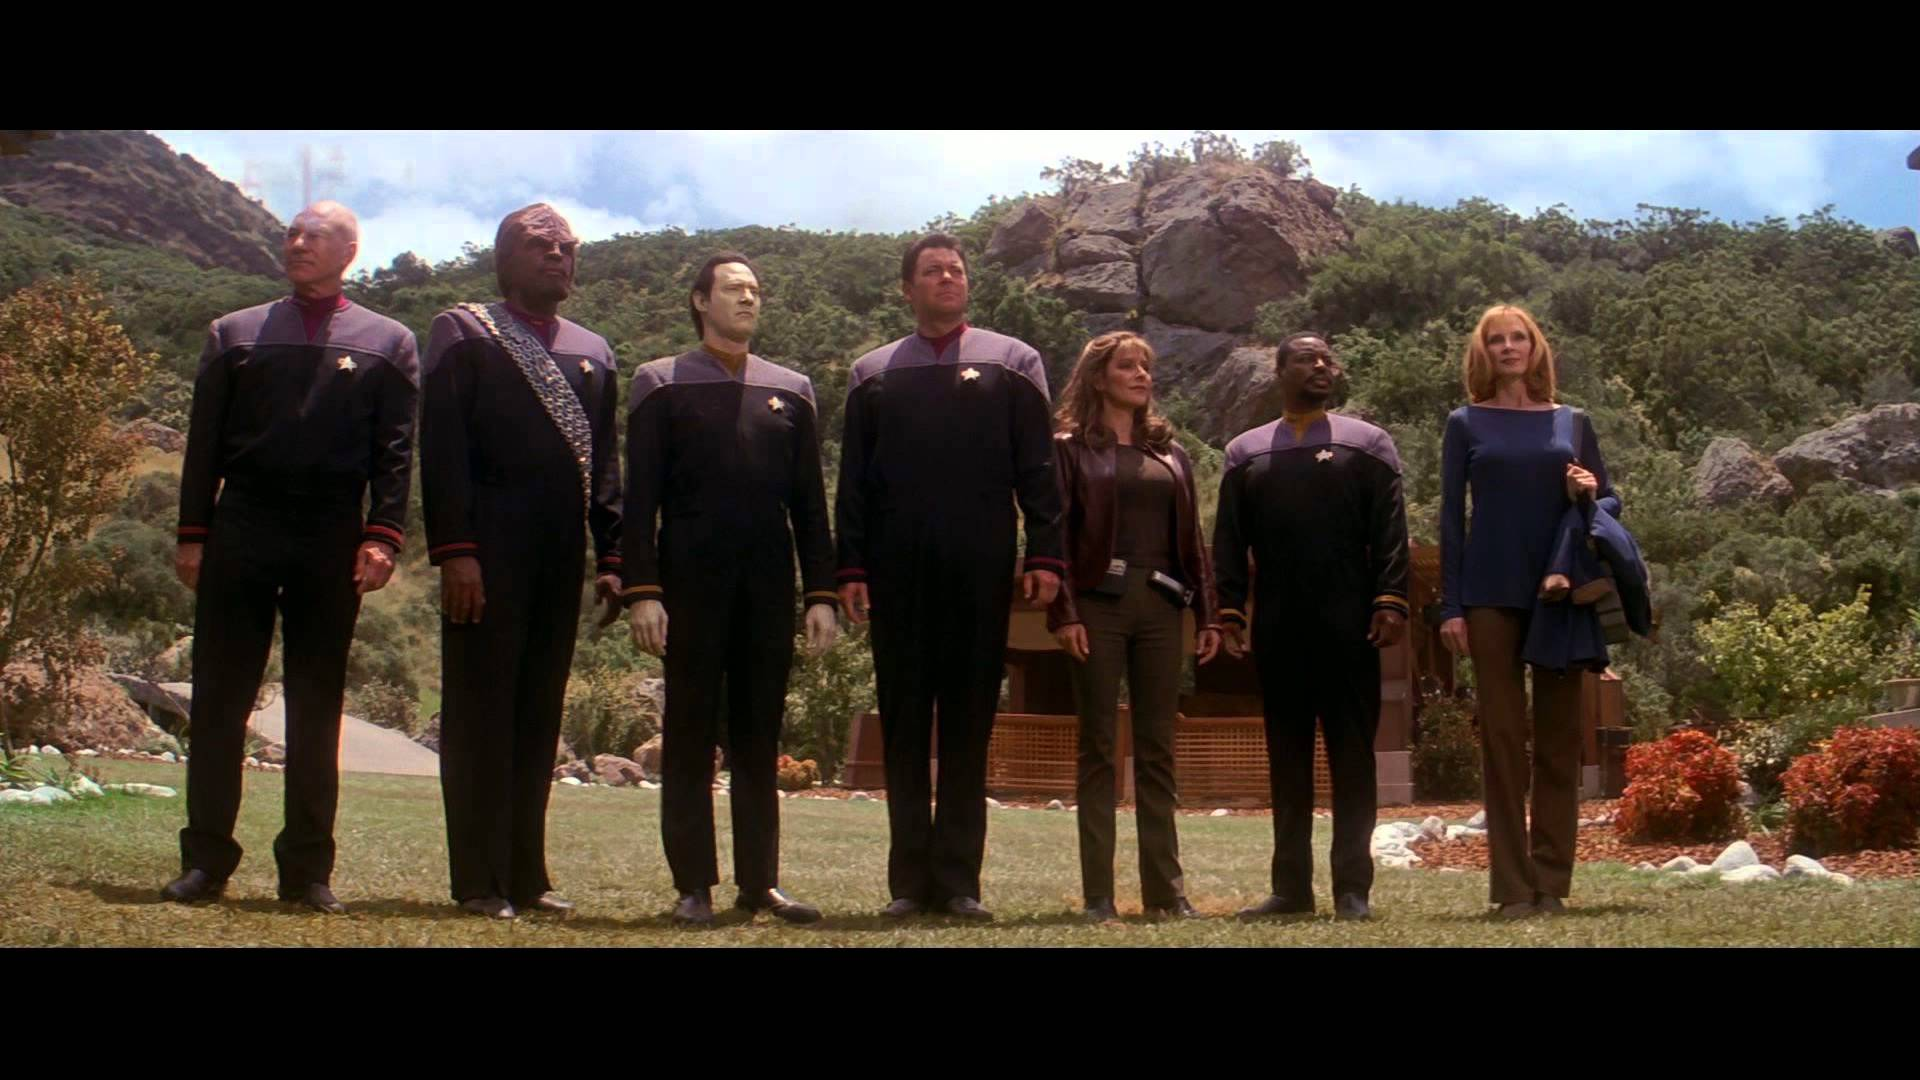 Star Trek: Insurrection cast